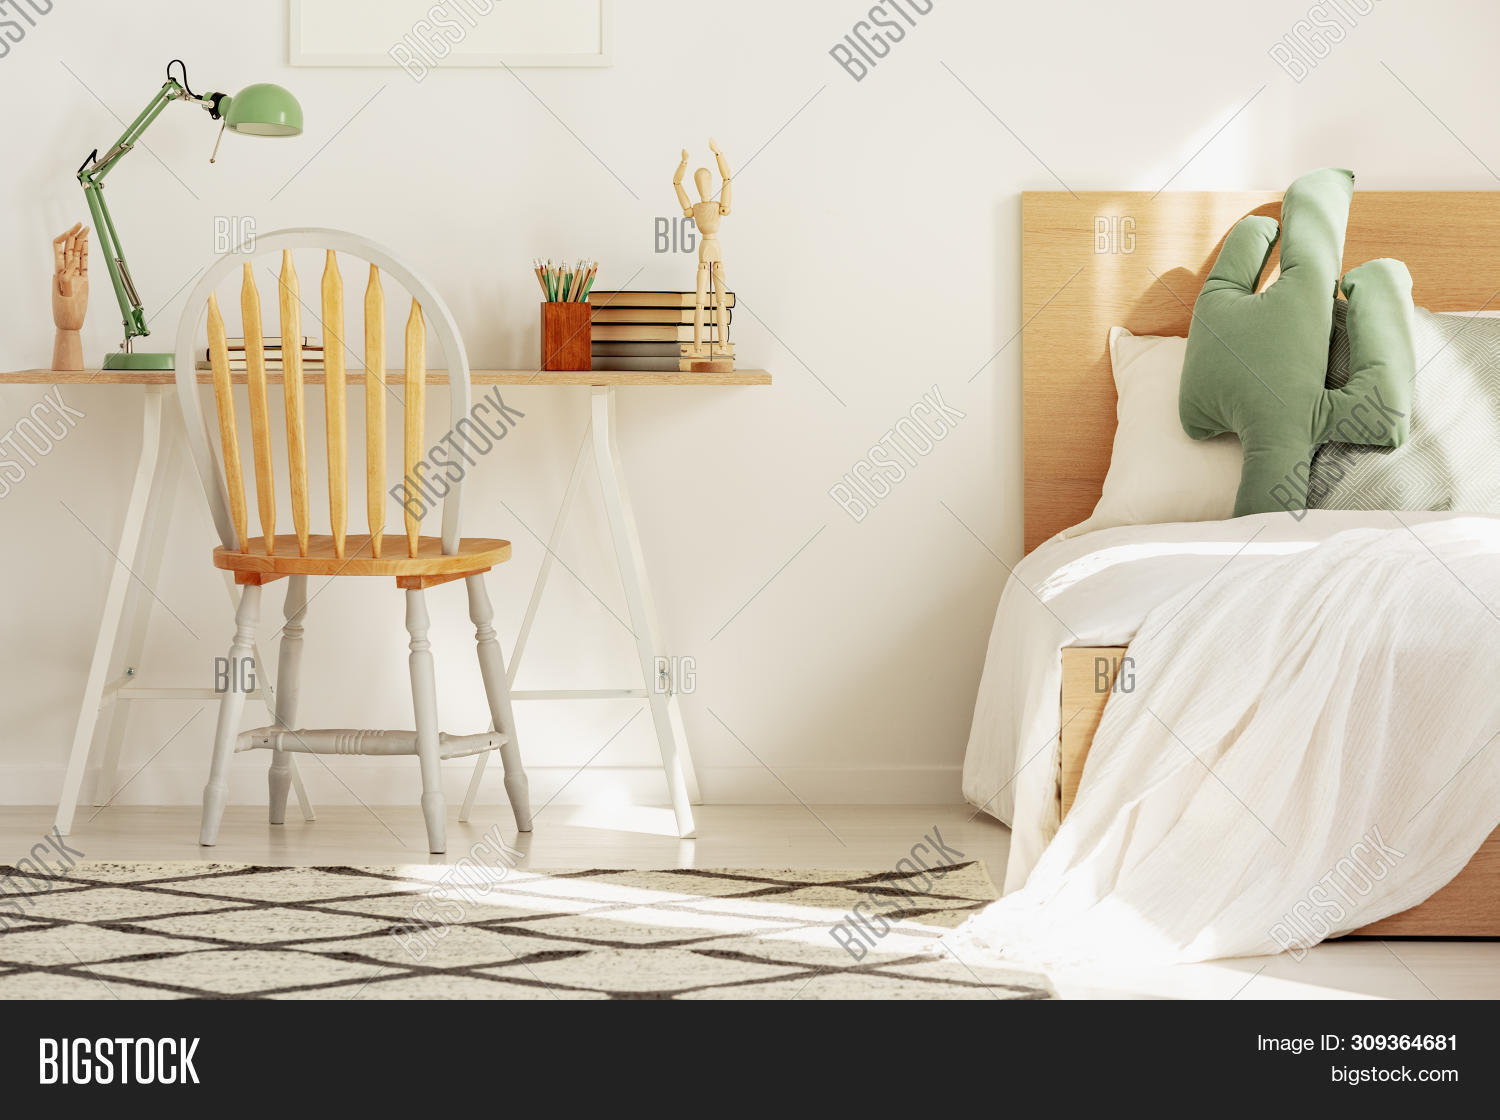 Wooden Chair Front Image Photo Free